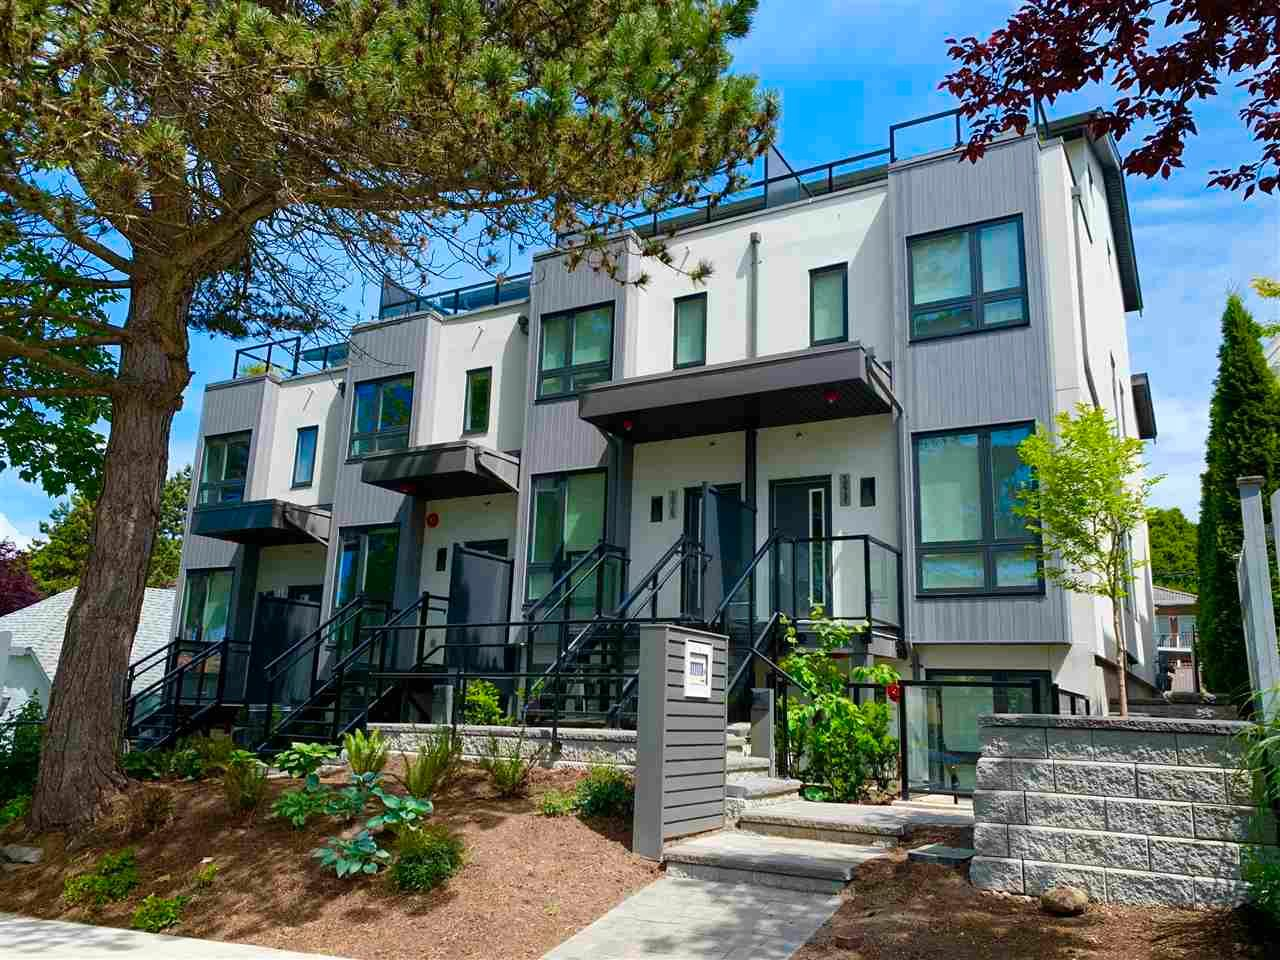 Main Photo: 2729 DUKE Street in Vancouver: Collingwood VE Townhouse for sale (Vancouver East)  : MLS®# R2589429